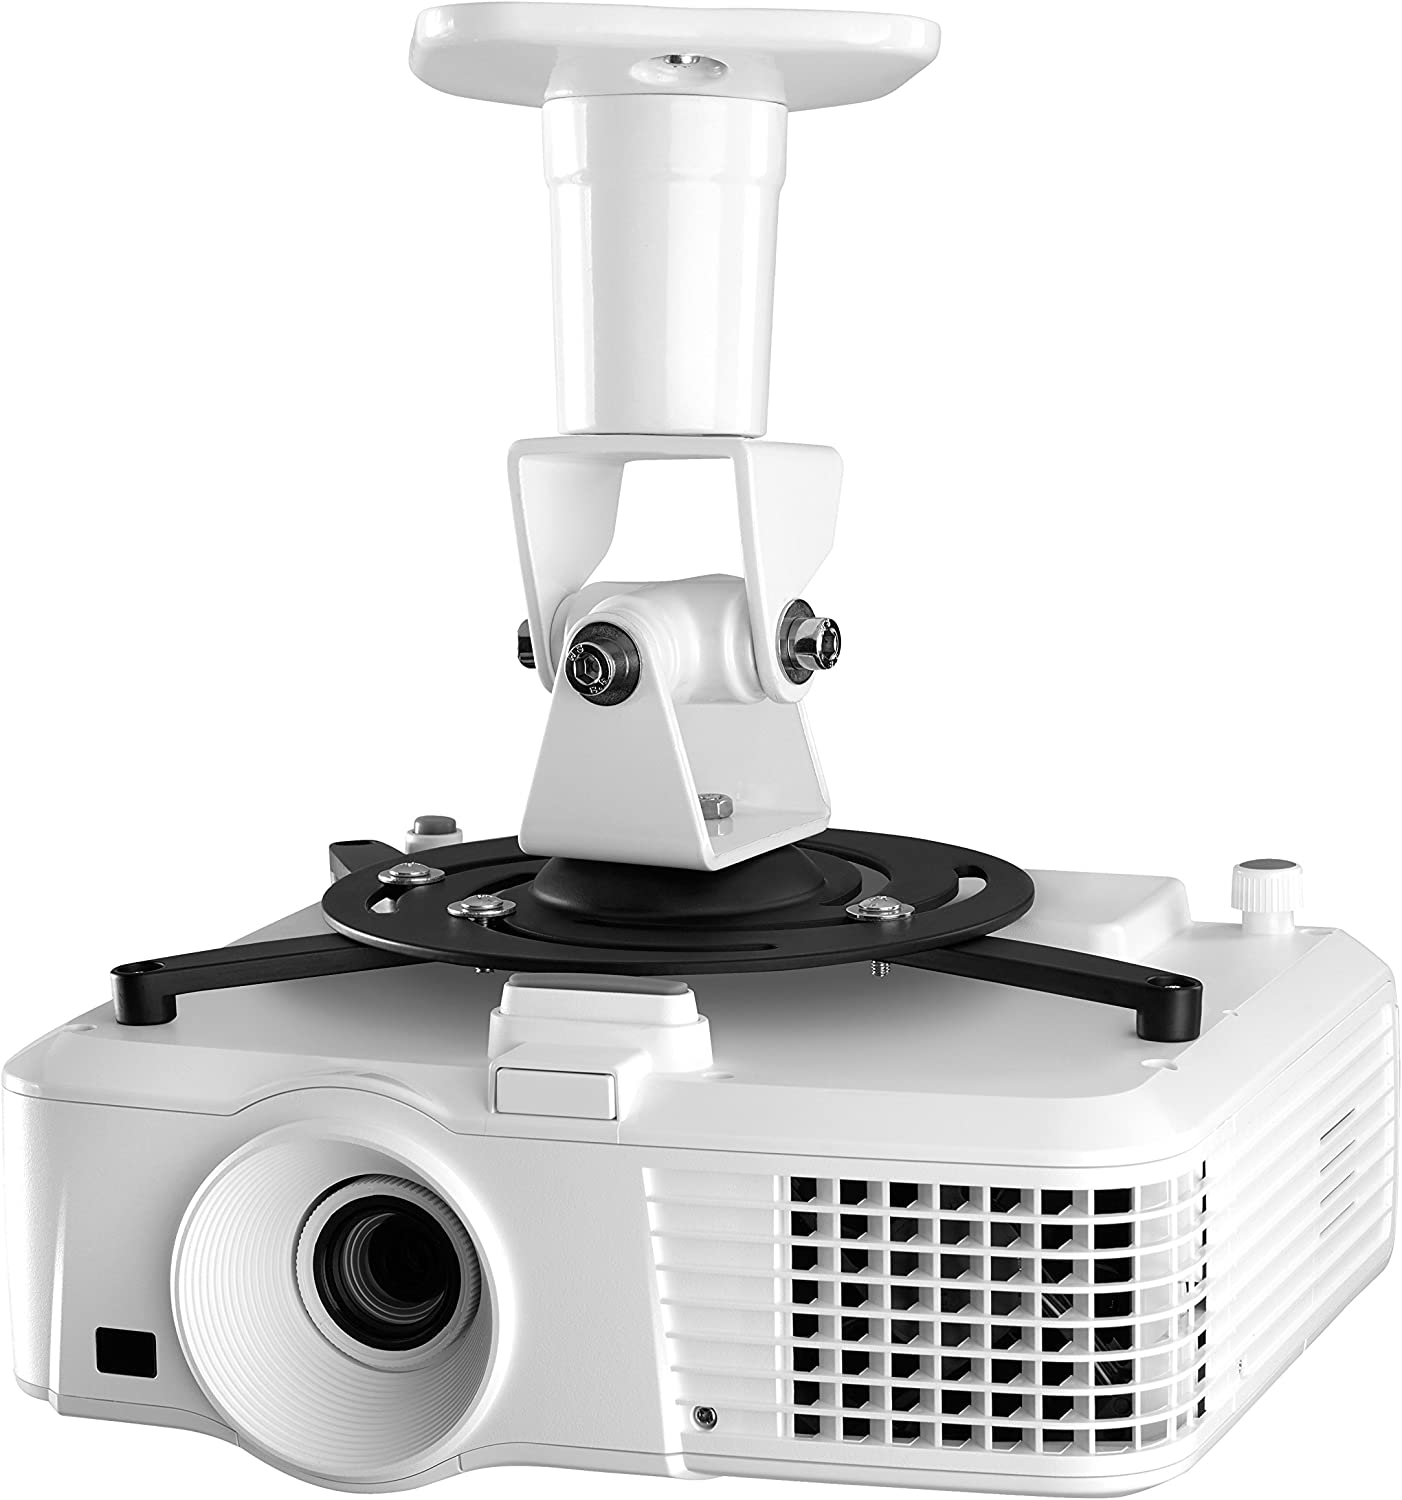 One For All WM5320 Montaje para Projector Pared/Techo Negro ...